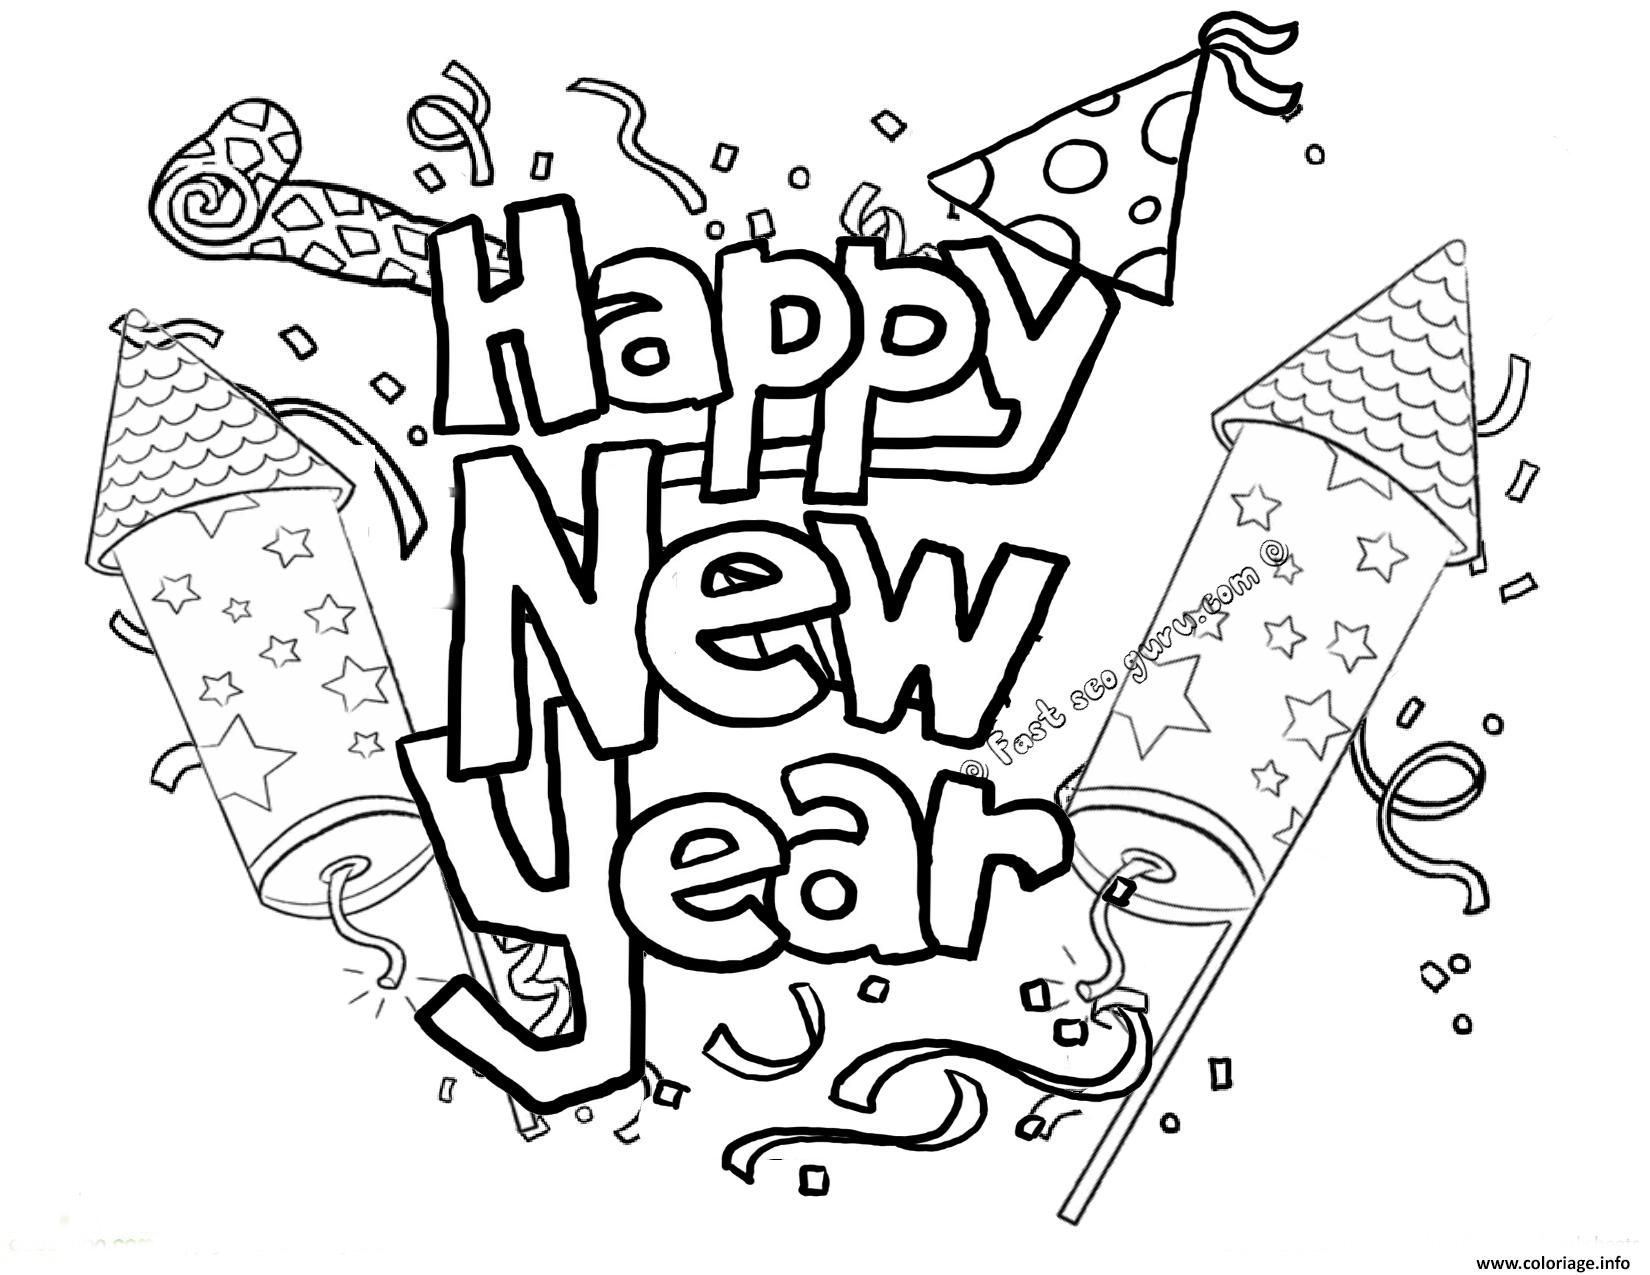 Coloriage Happy New Year Printable 2 Dessin New Year Coloring Pages Flag Coloring Pages Happy New Year Fireworks